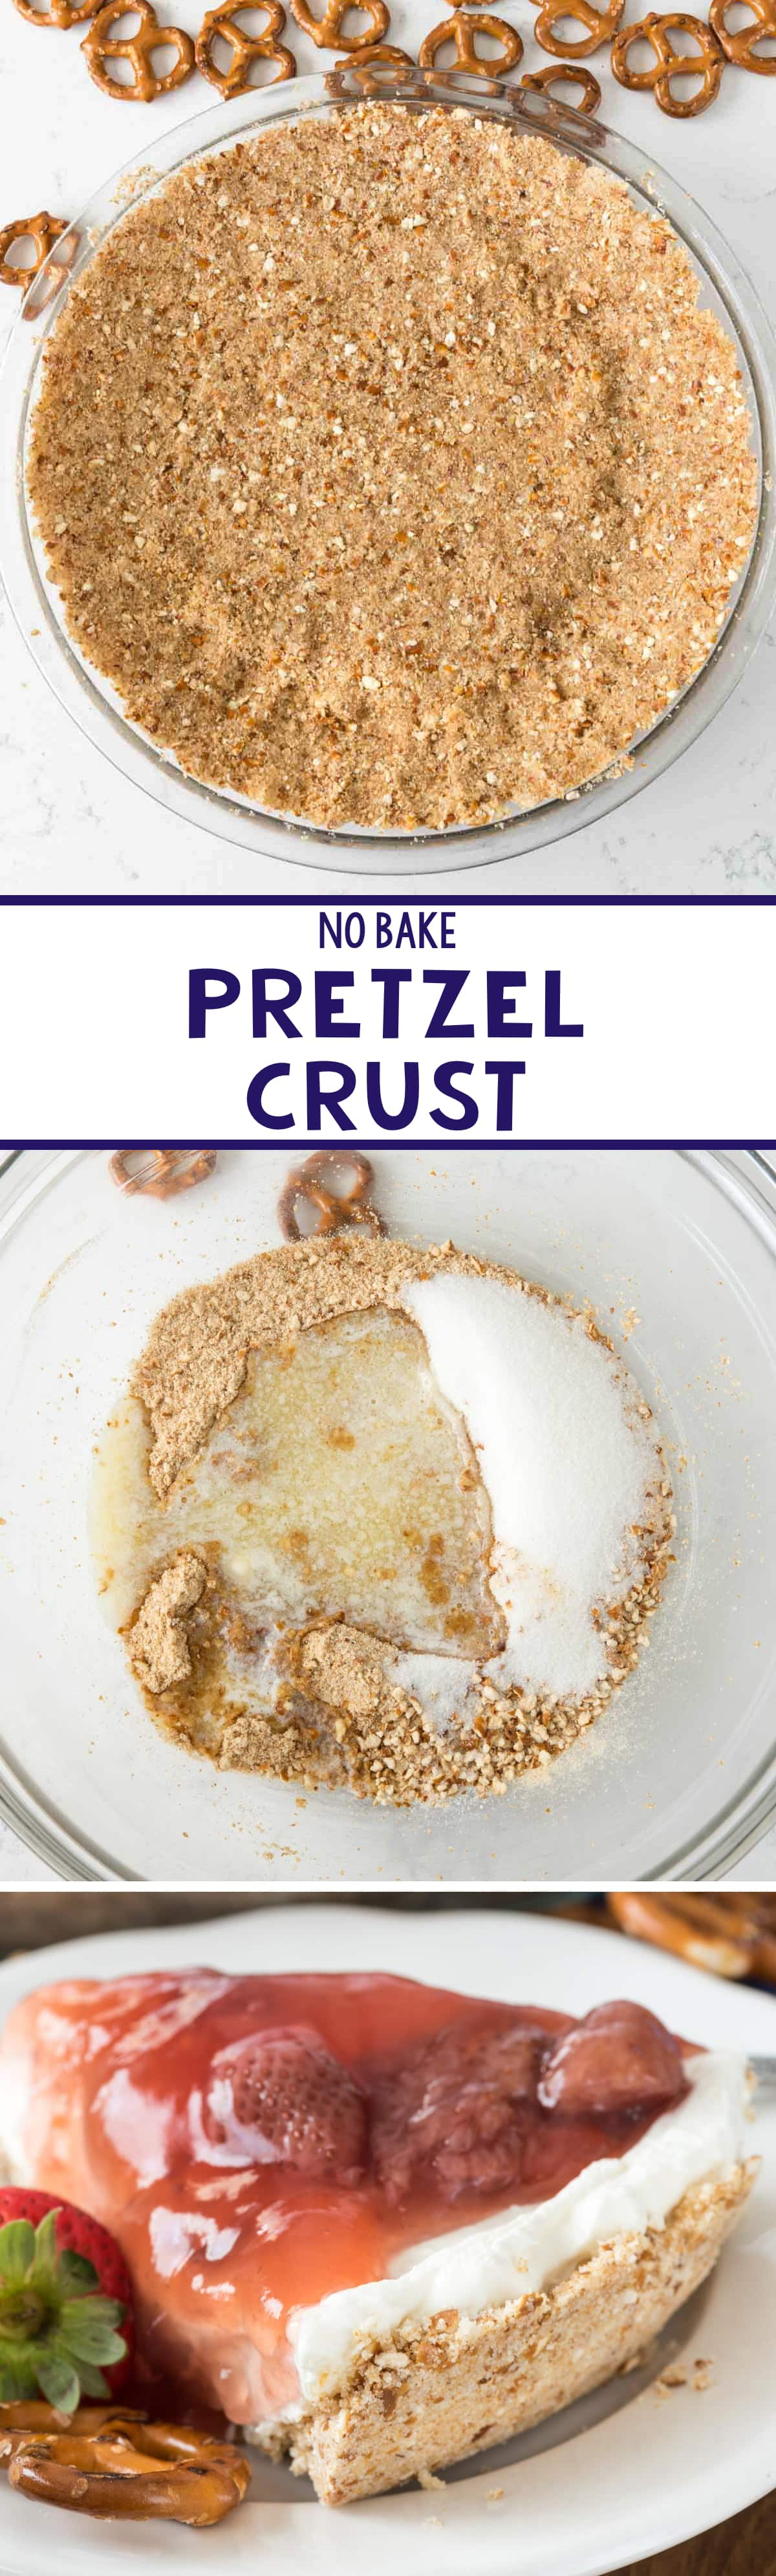 NO Bake Pretzel Crust - this easy no bake crust recipe is all pretzel! Perfect for a fruit or peanut butter or chocolate pie recipe!